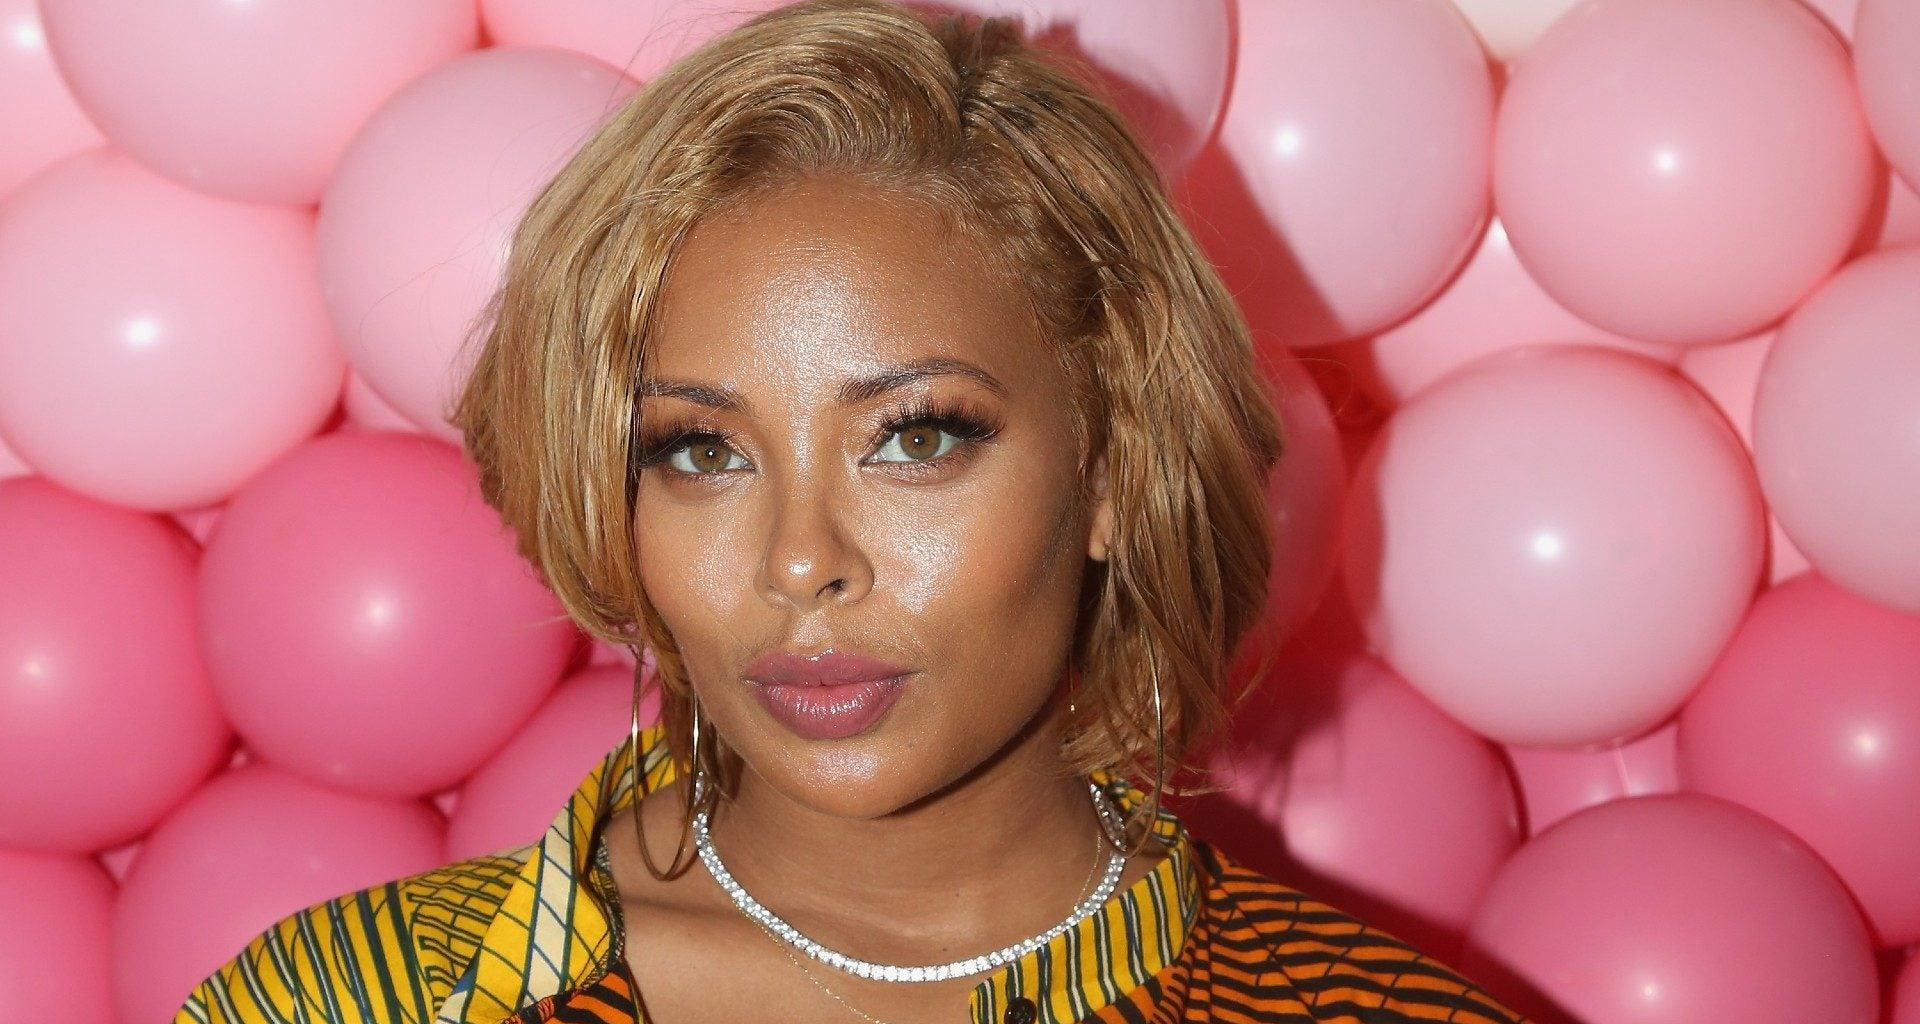 Eva Marcille Tells Fans That Her Glow Comes From The Inside: 'It's All About Self-Care And Self-Love'